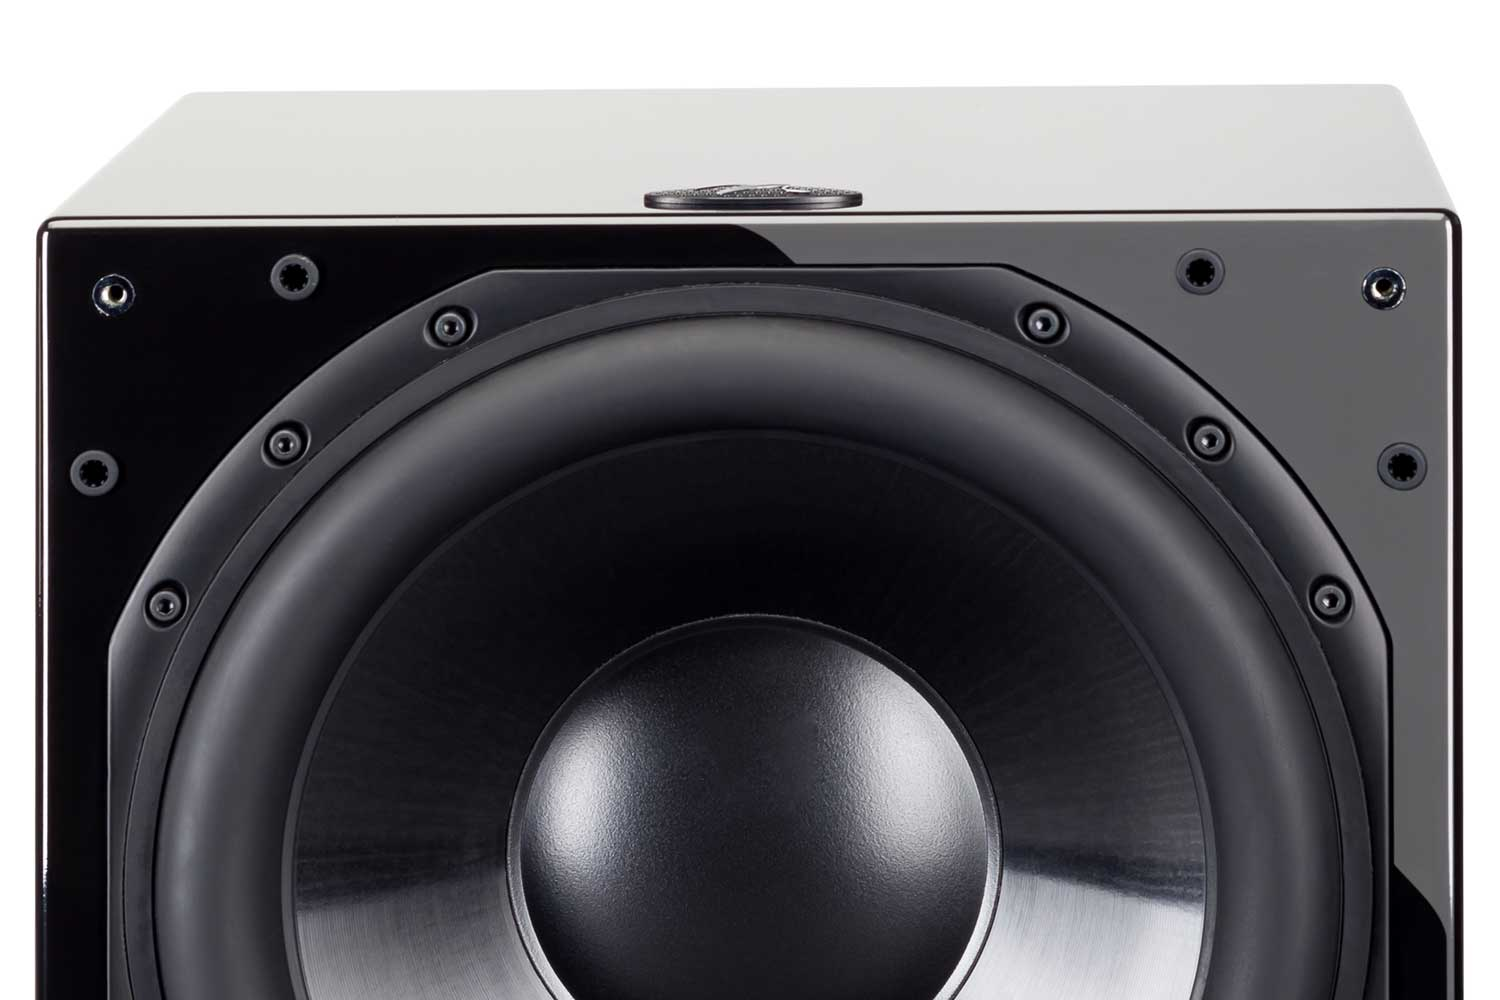 Martinlogan Dynamo 1500x 1 Subwoofer 15 Inch Ultra Powerful With Pbk Room Correction Capability